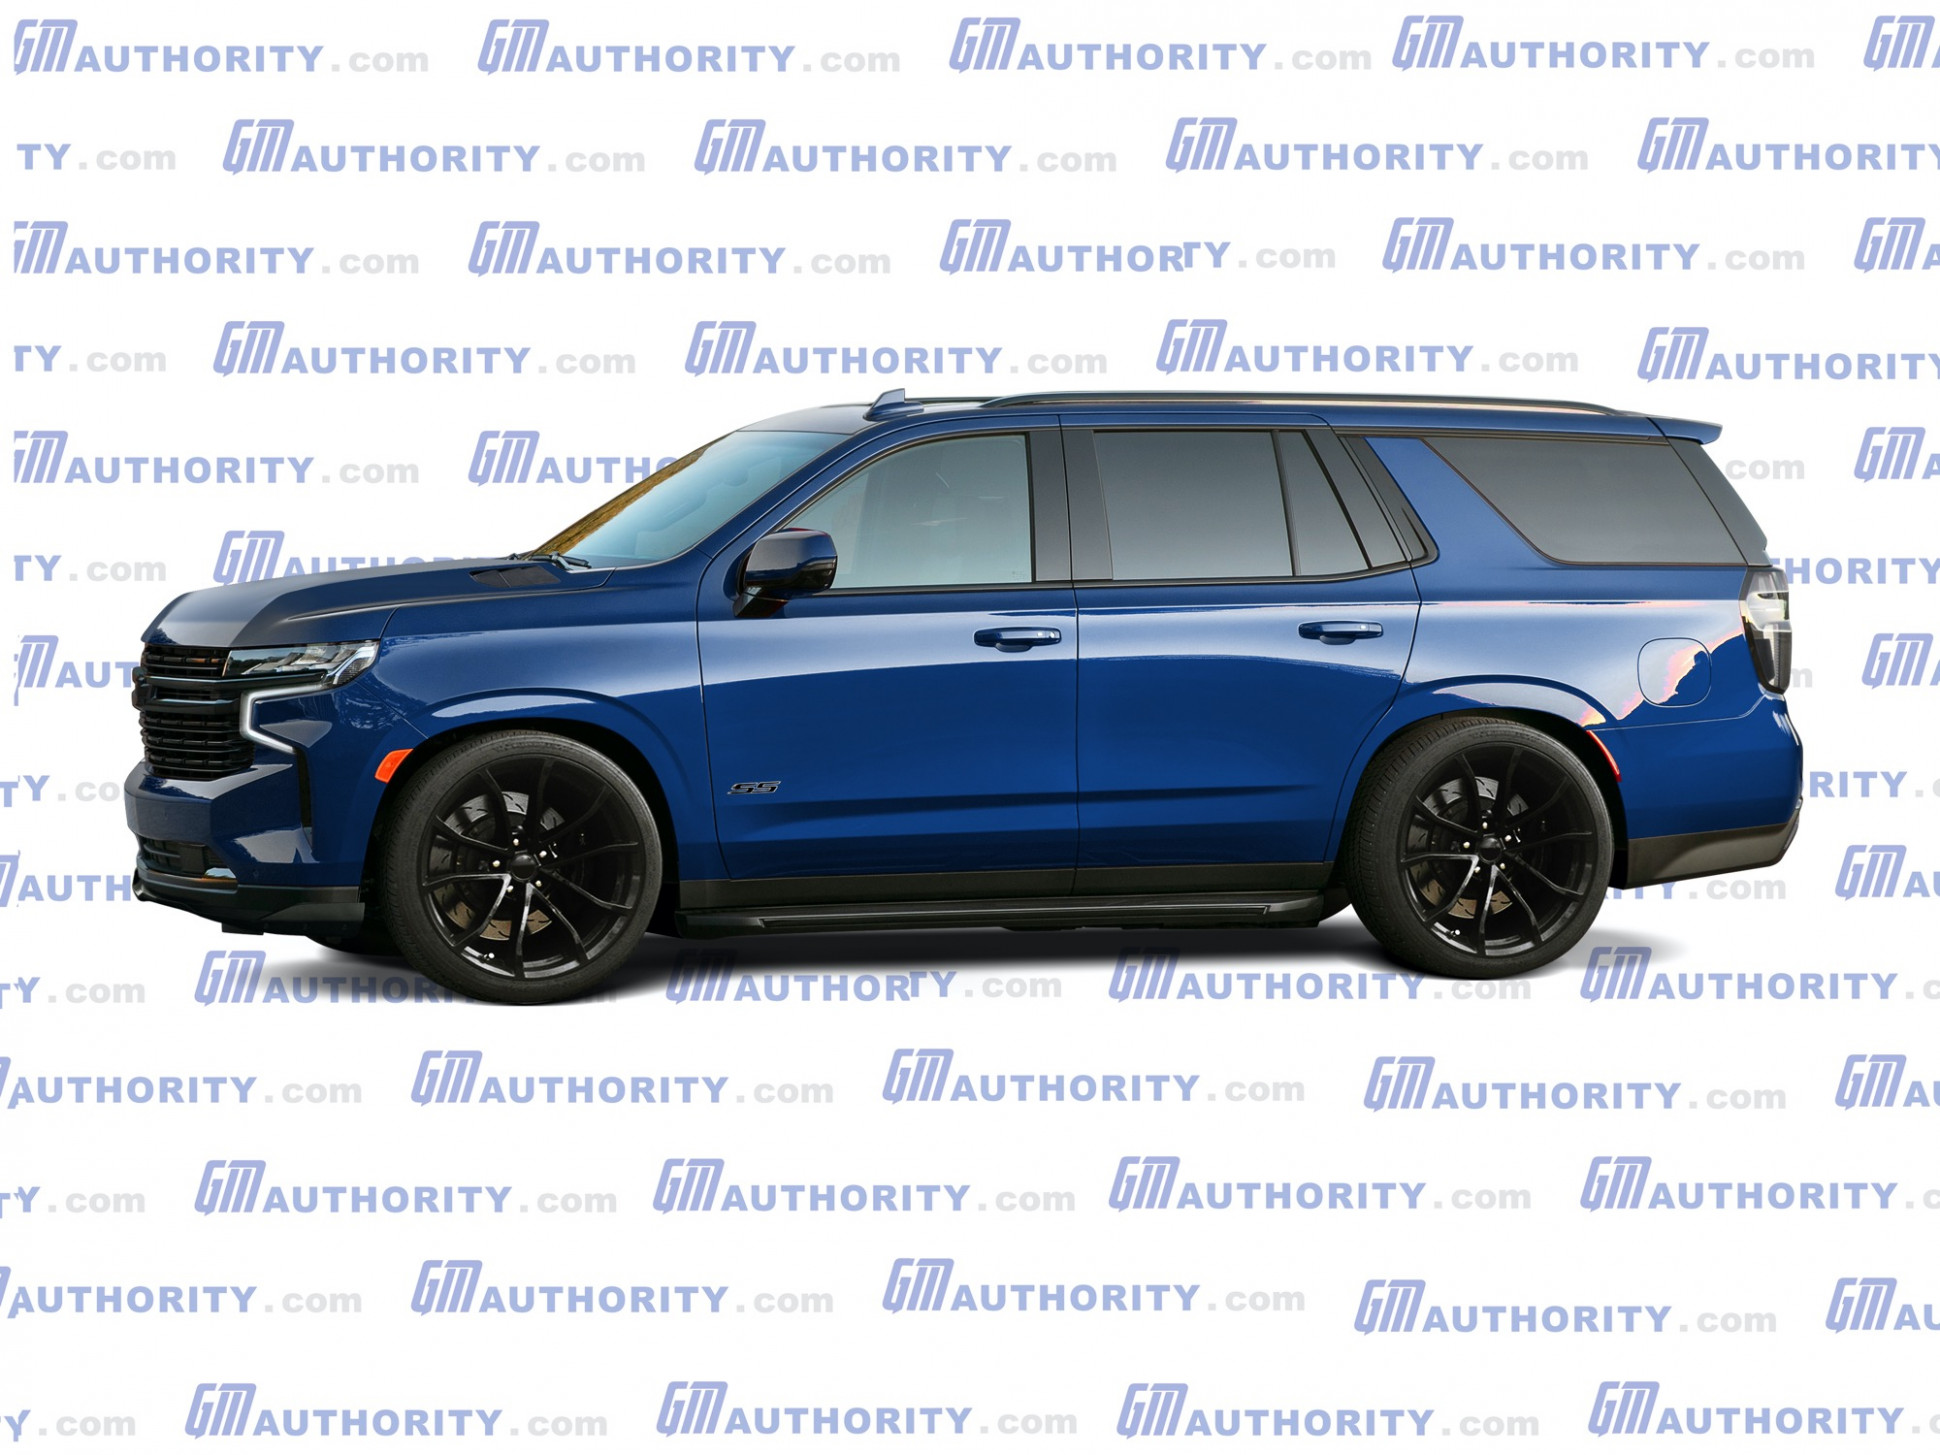 Release 2022 Chevy Tahoe